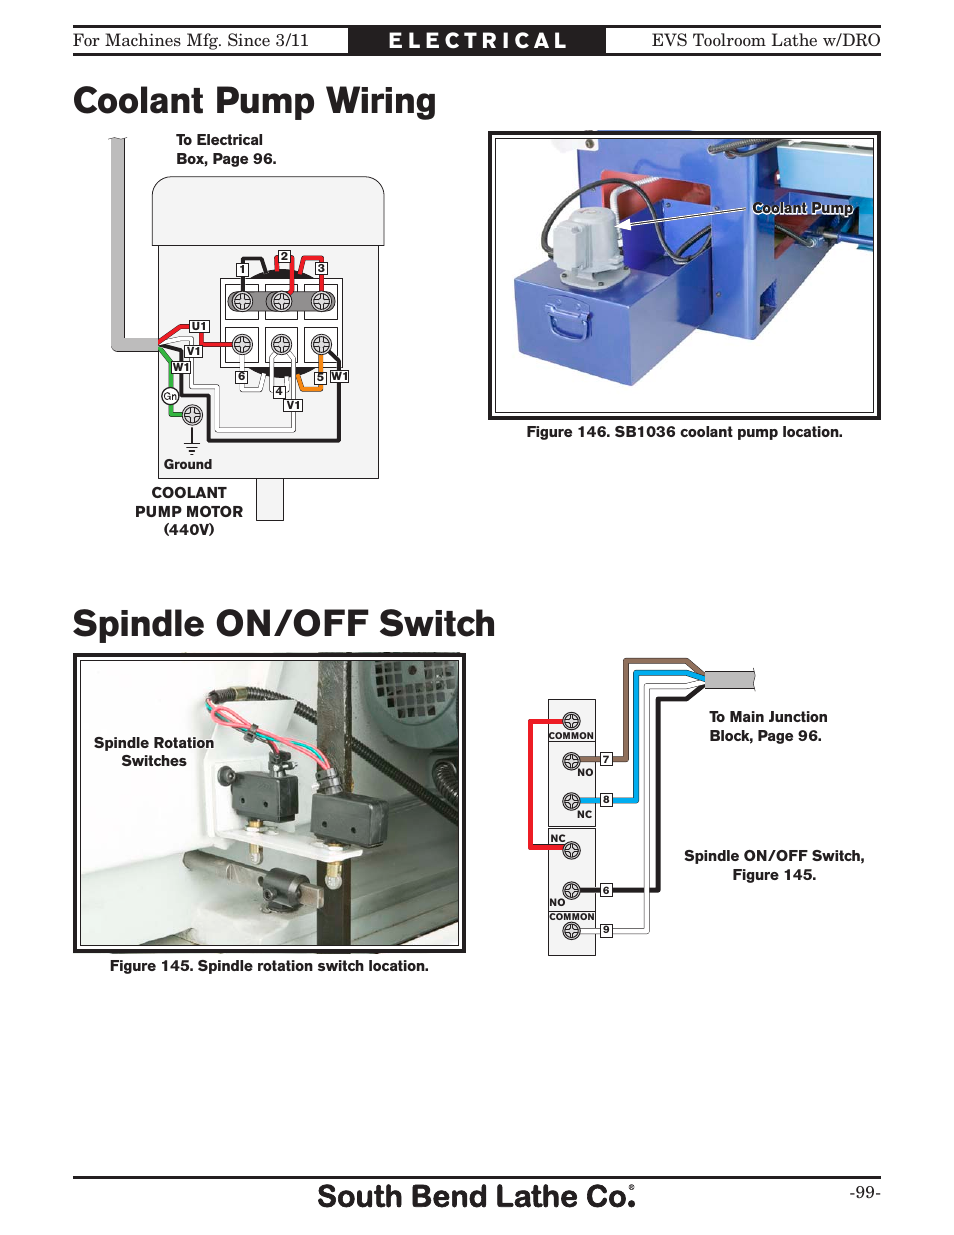 Coolant Pump Wiring Spindle On Off Switch Rotation And South Bend Lathe Diagram Power Conn Tection Southbend Evs Tool Room W Dro Sb1059f User Manual Page 101